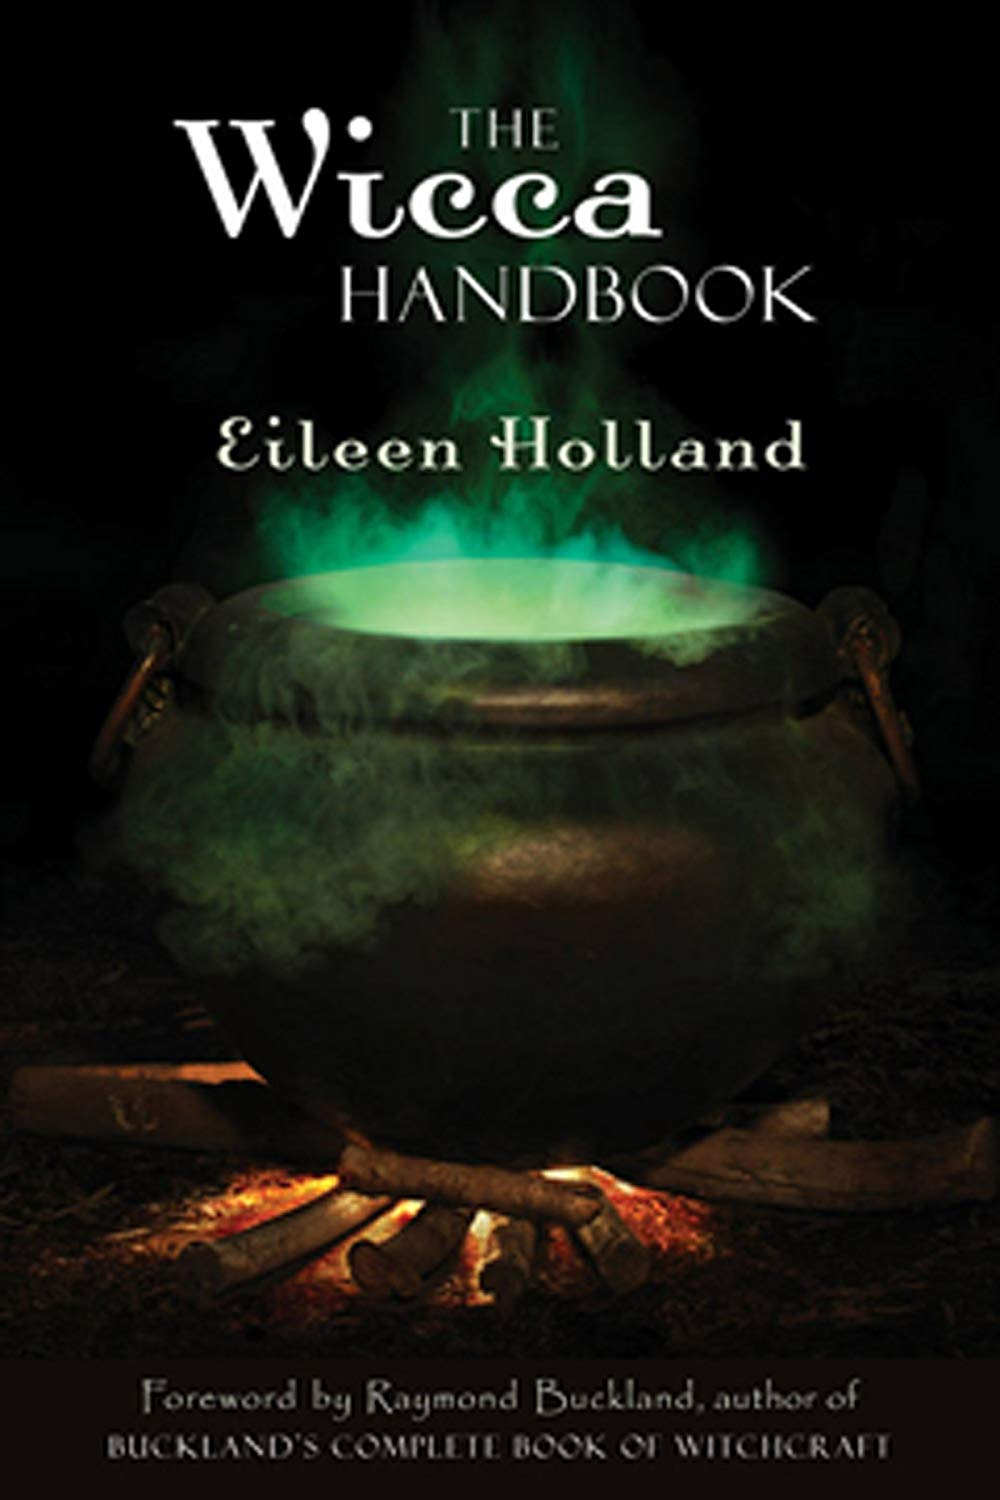 The Wicca Handbook (Eileen Holland)